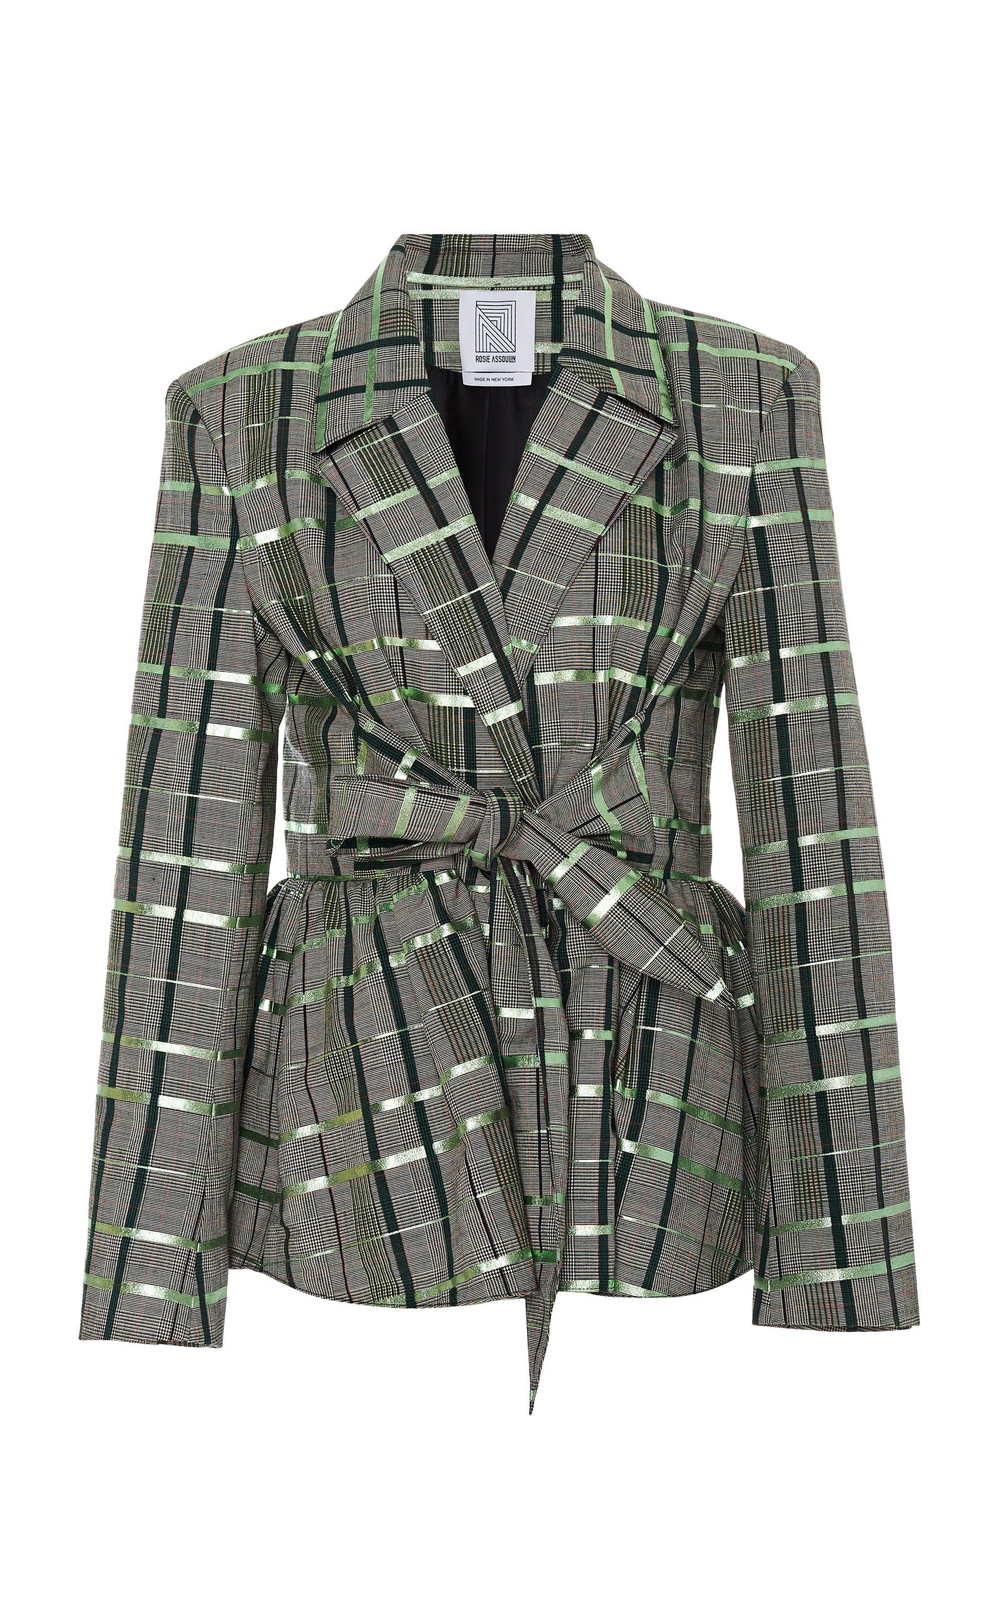 Rosie Assoulin Belted Plaid Wool-Blend Blazer in green